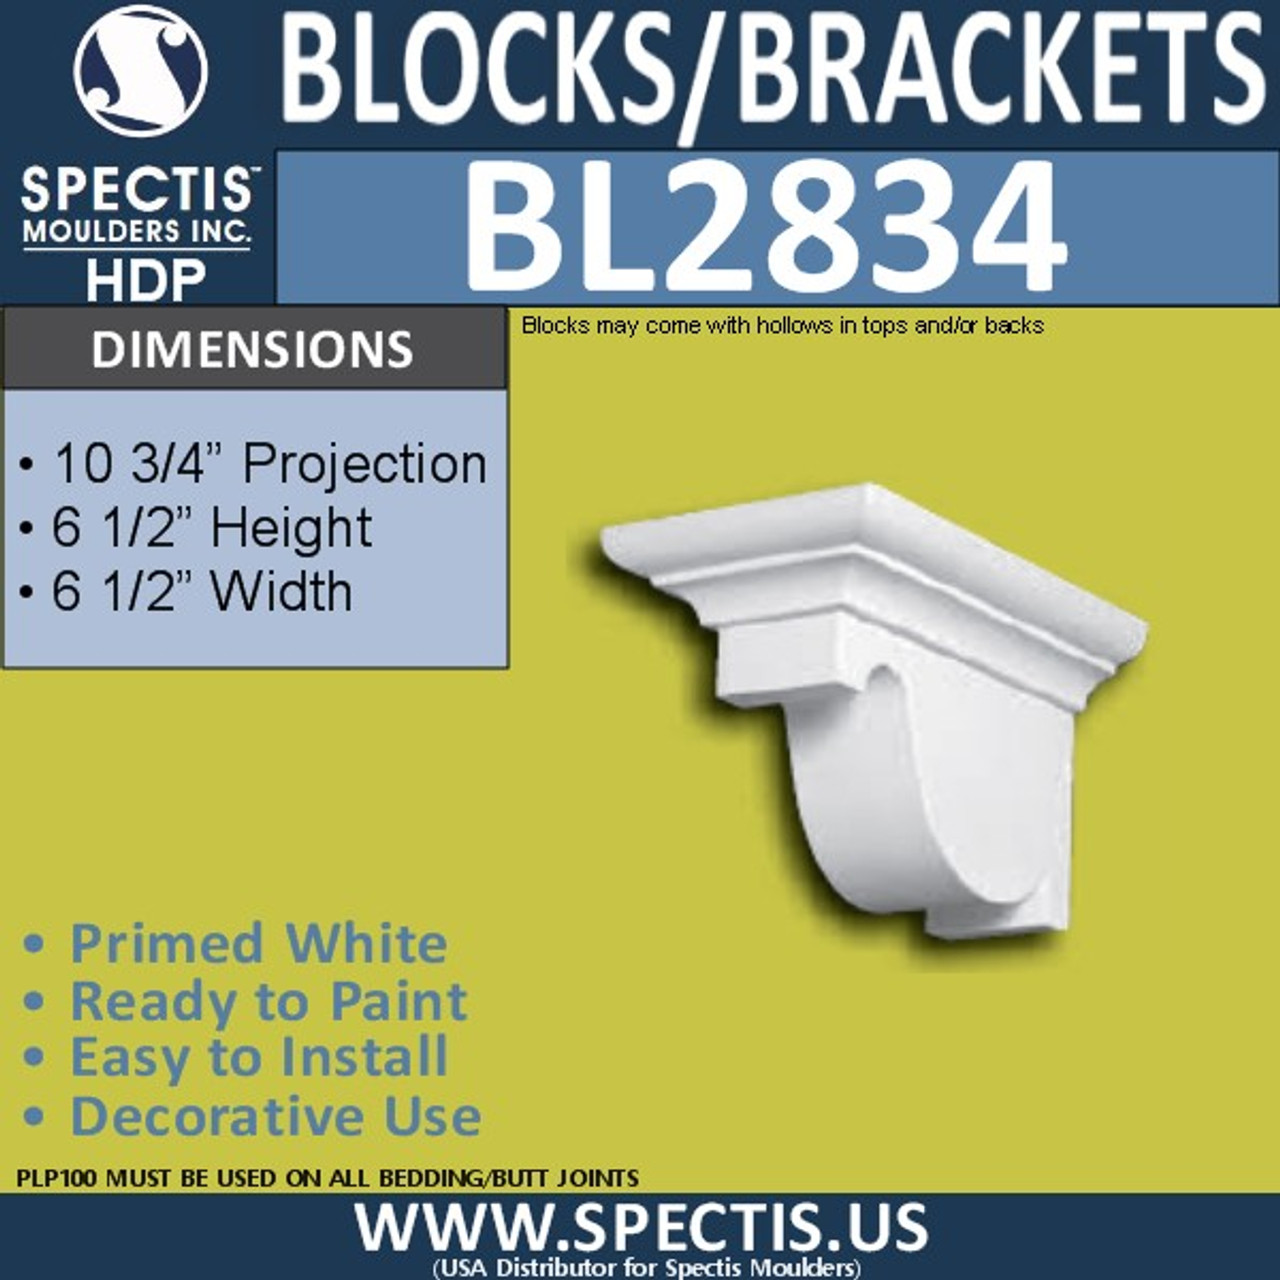 "BL2834 Eave Block or Bracket 6.5""W x 6.5""H x 10.75"" P"